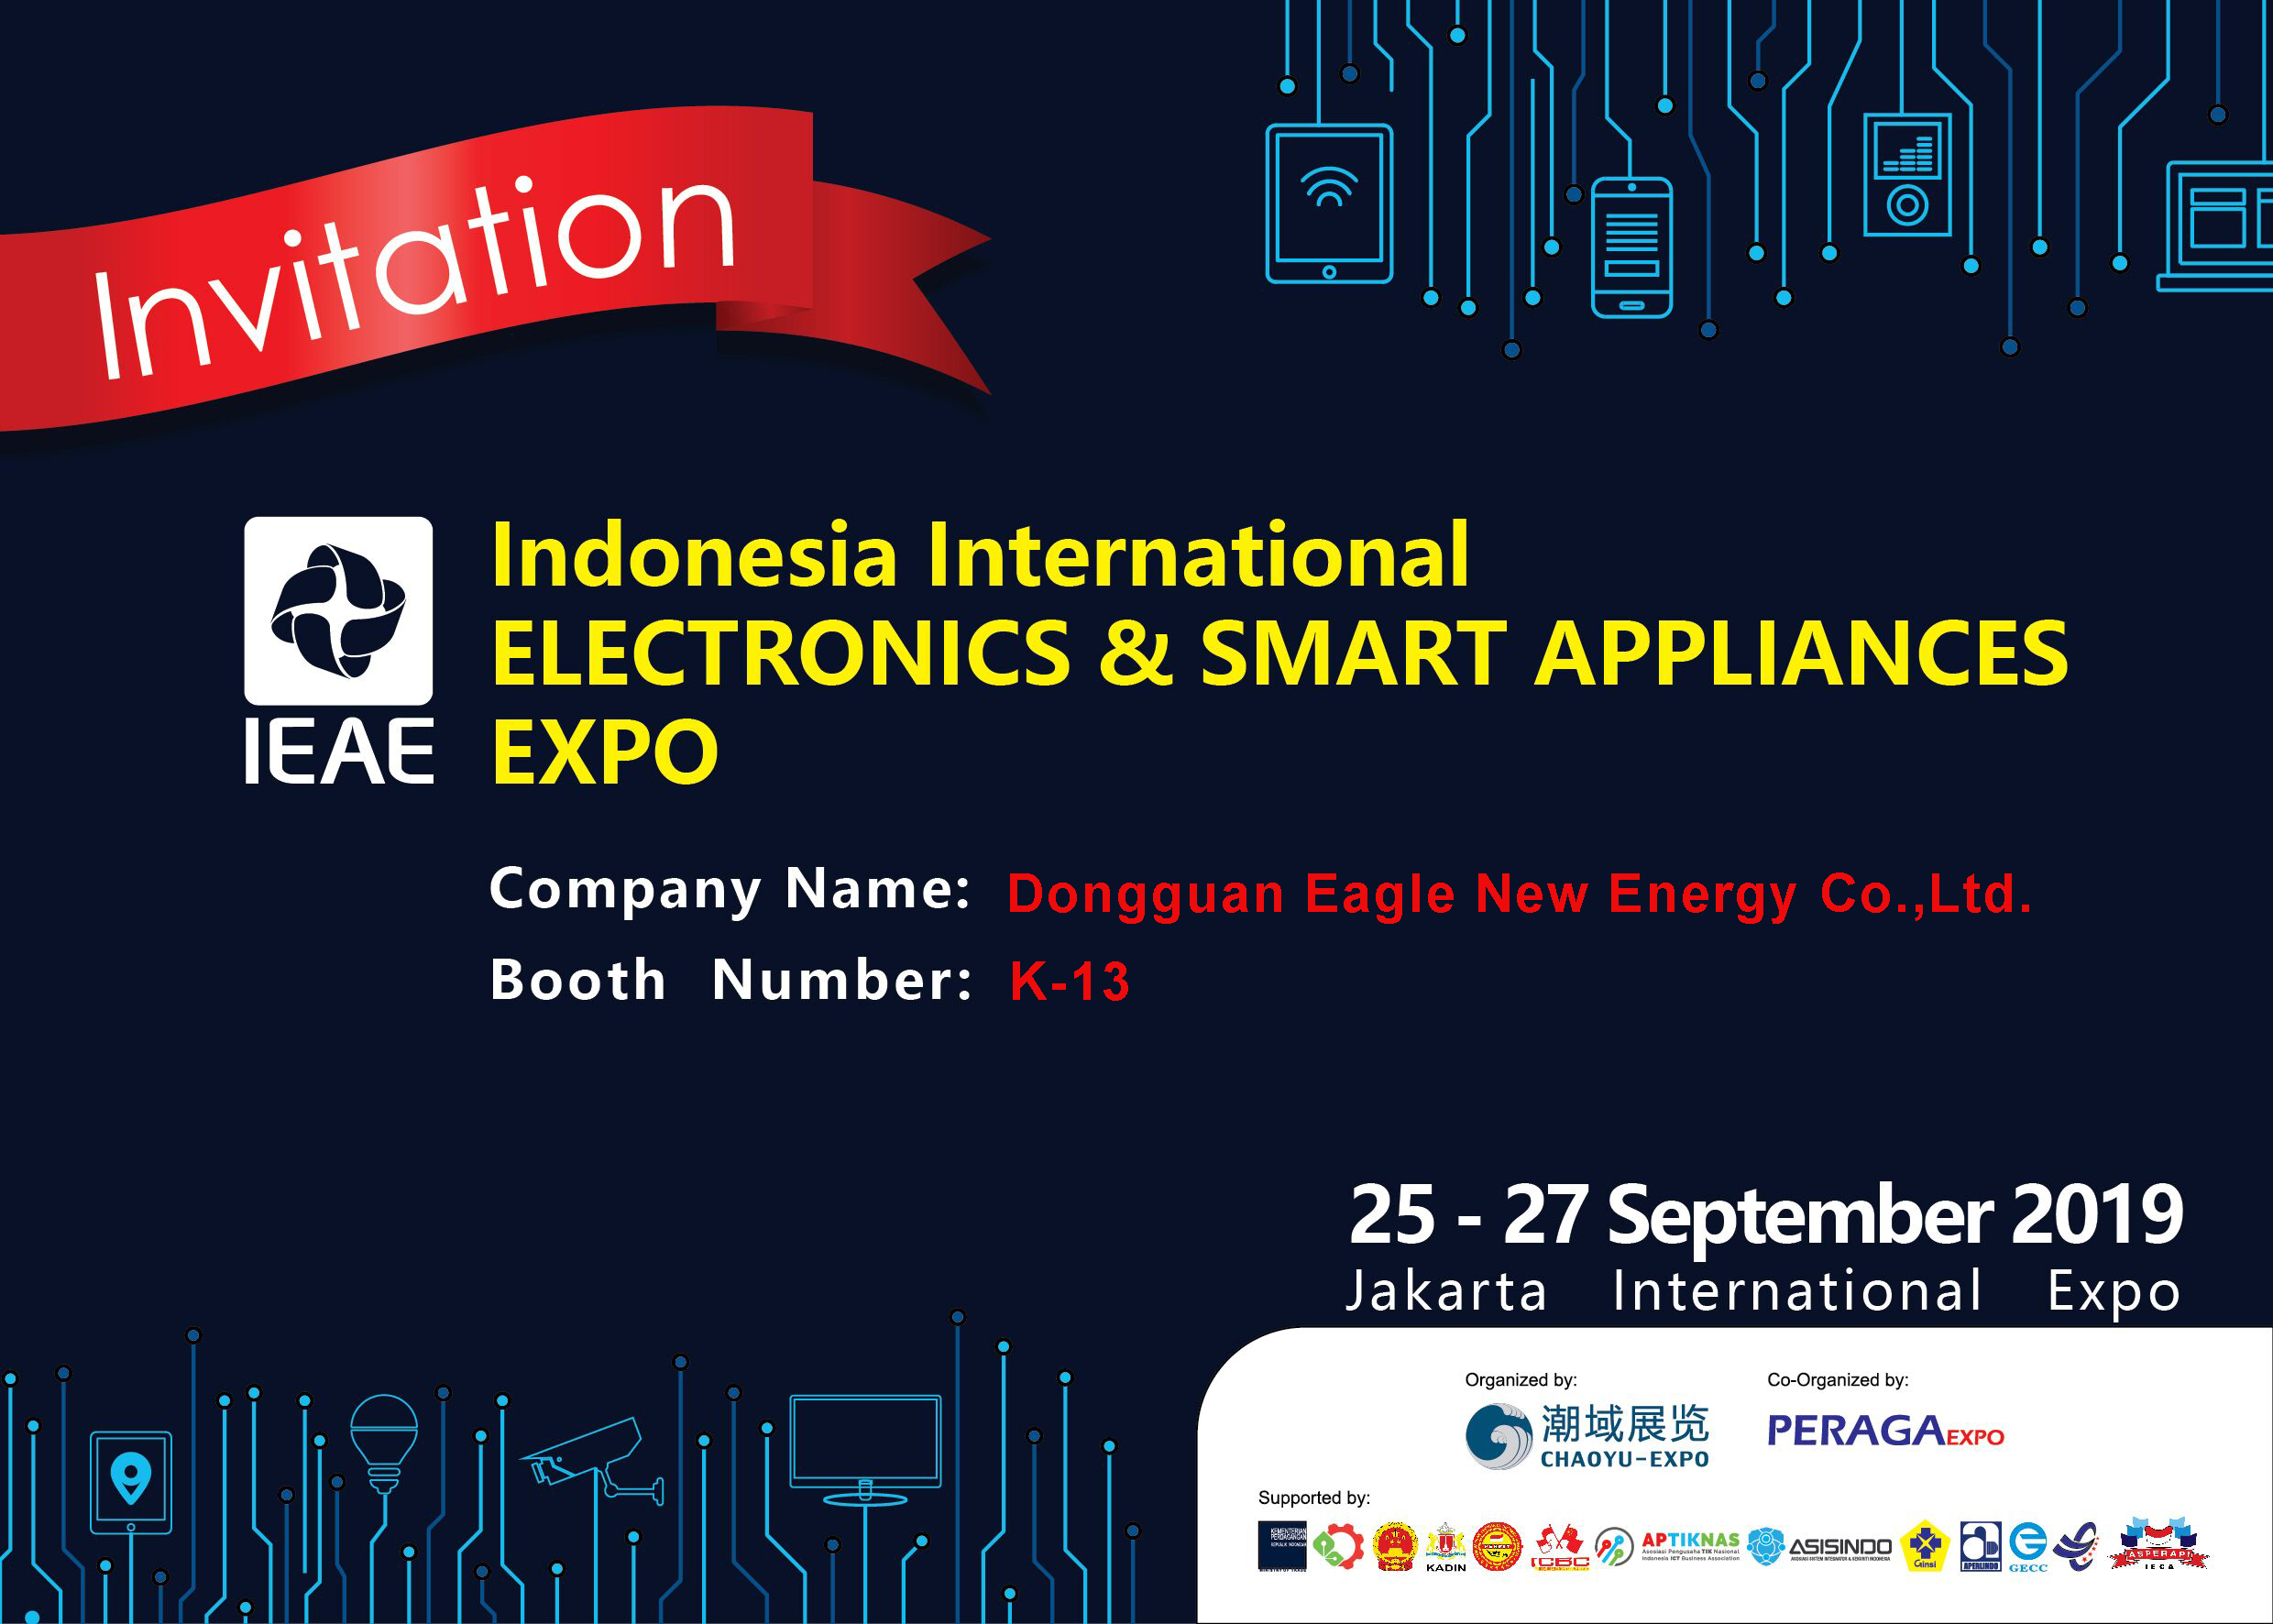 Indonesia International Electronics & Smart Appliances Expo